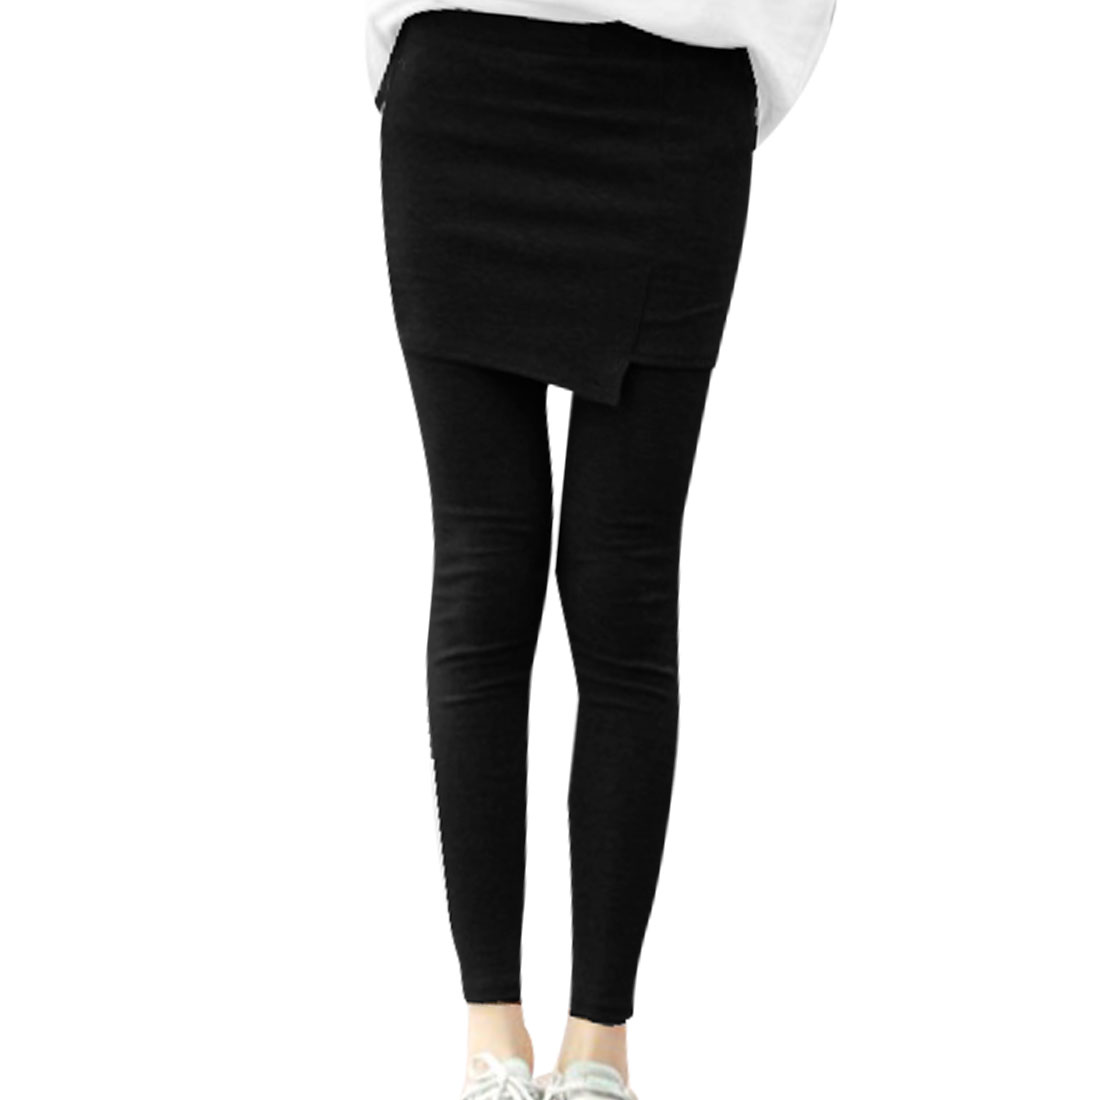 Elastic Waist Fake Two Pieces Thin Pantskirt Leggings Black XS for Women